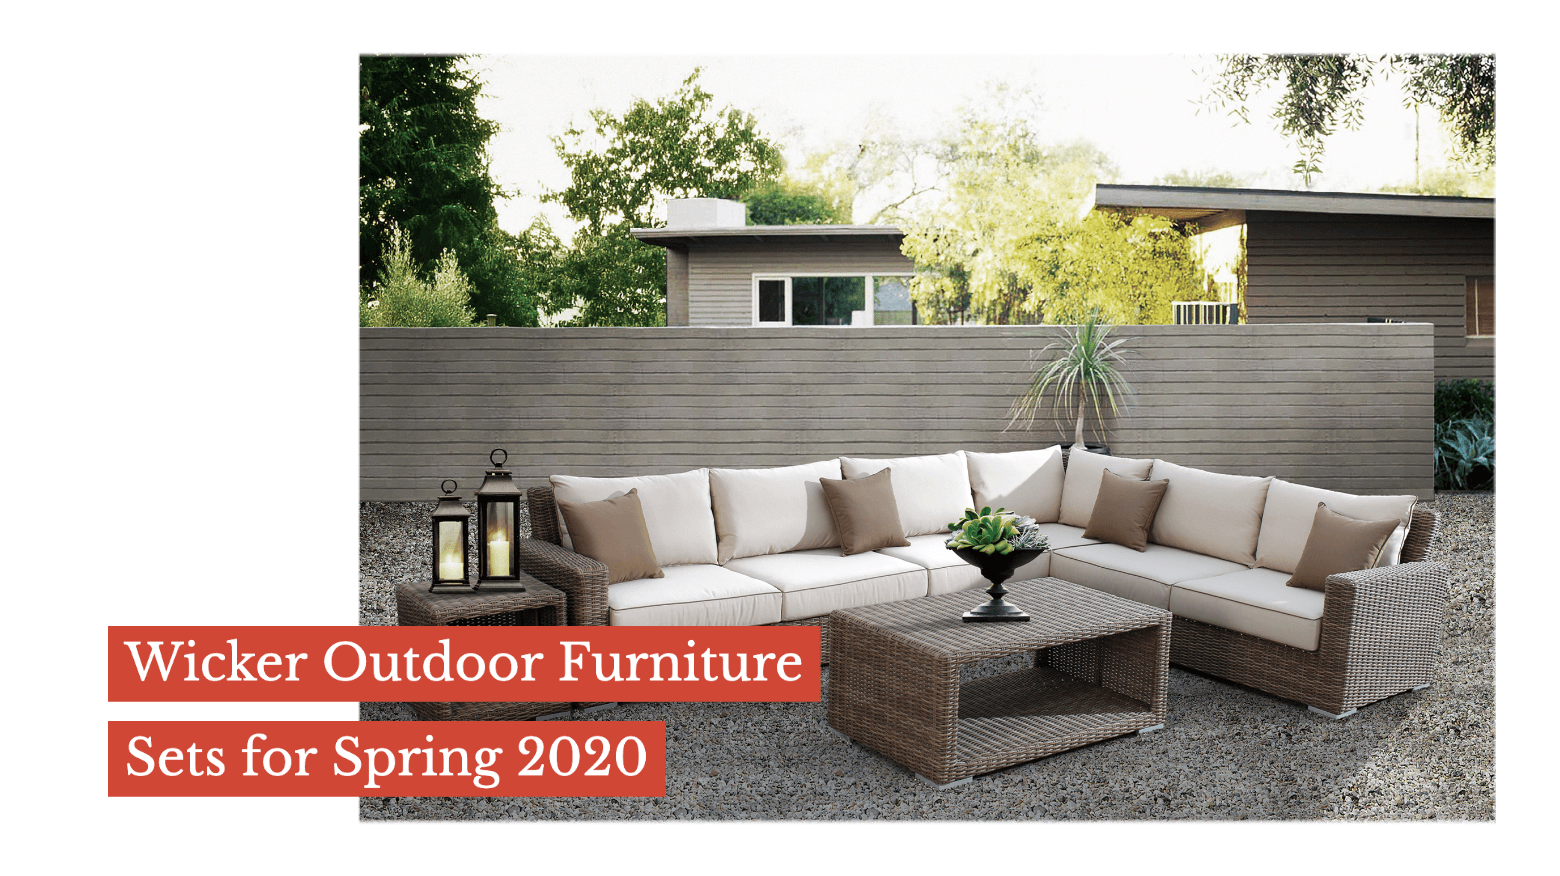 Wicker Outdoor Furniture Sets for Spring 2020